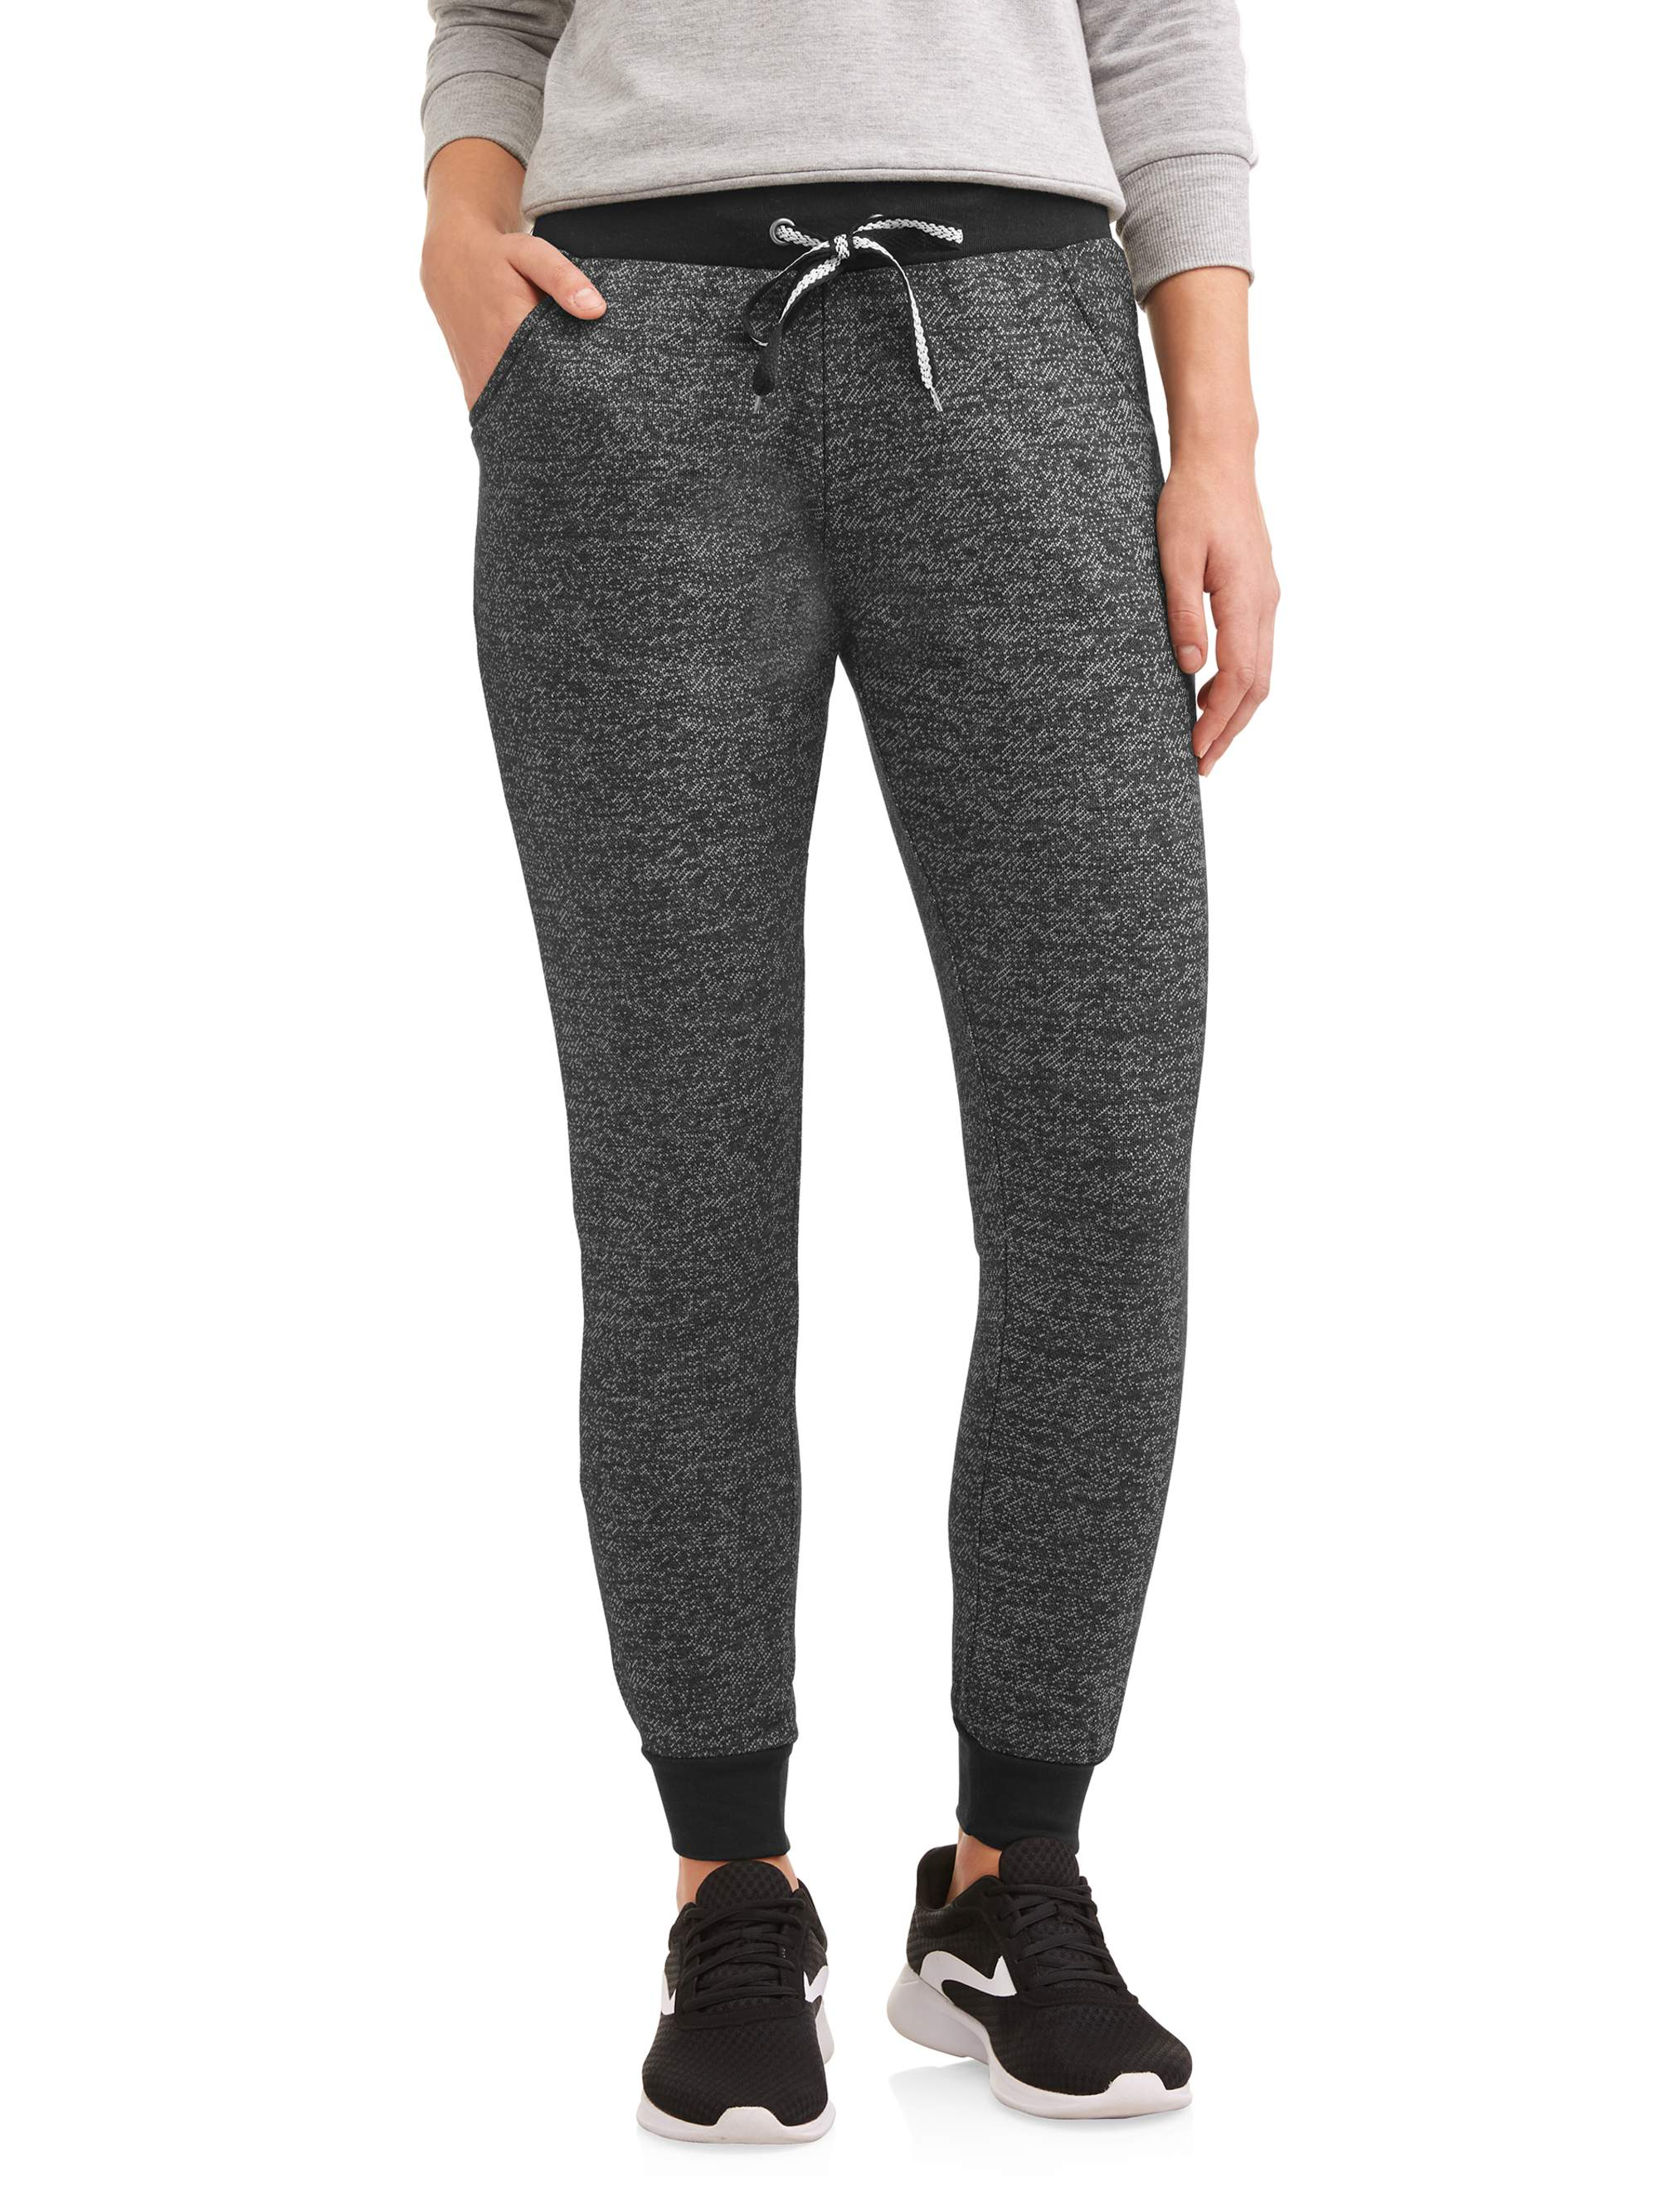 Women's and Women's Plus Athleisure Tweed Pant